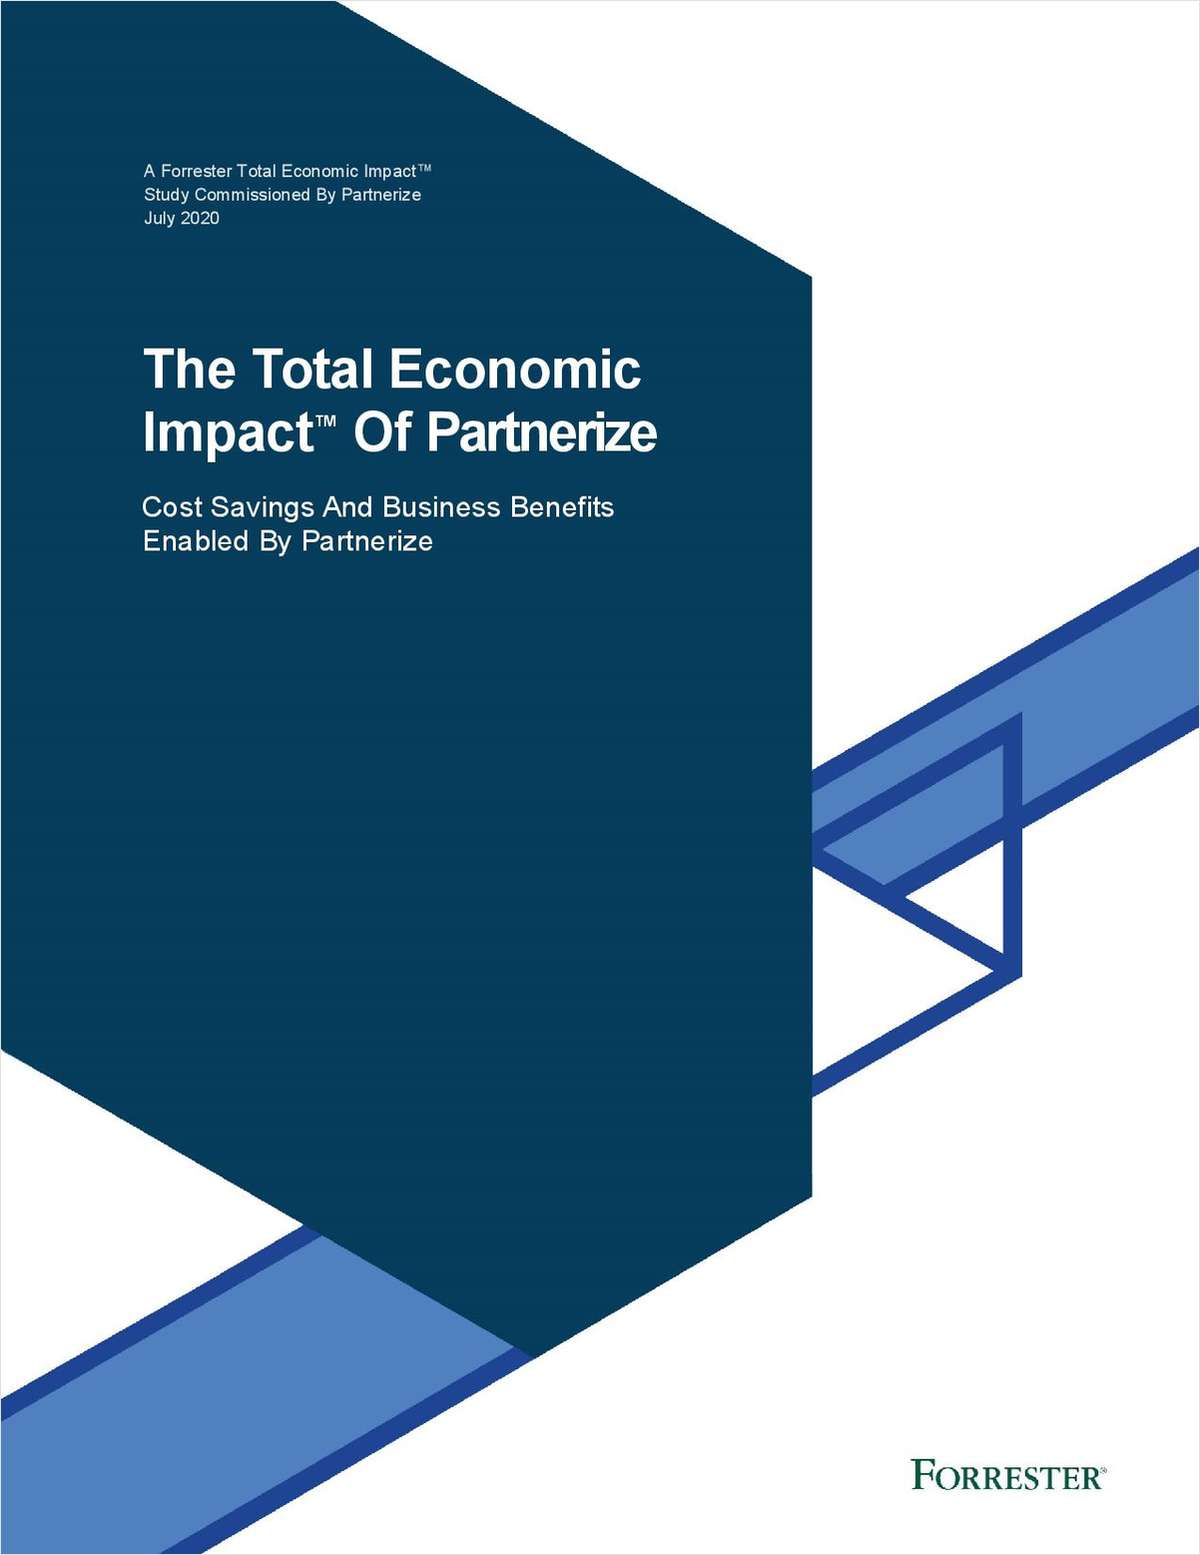 Forrester Report: The Total Economic Impact™ of Partnerize